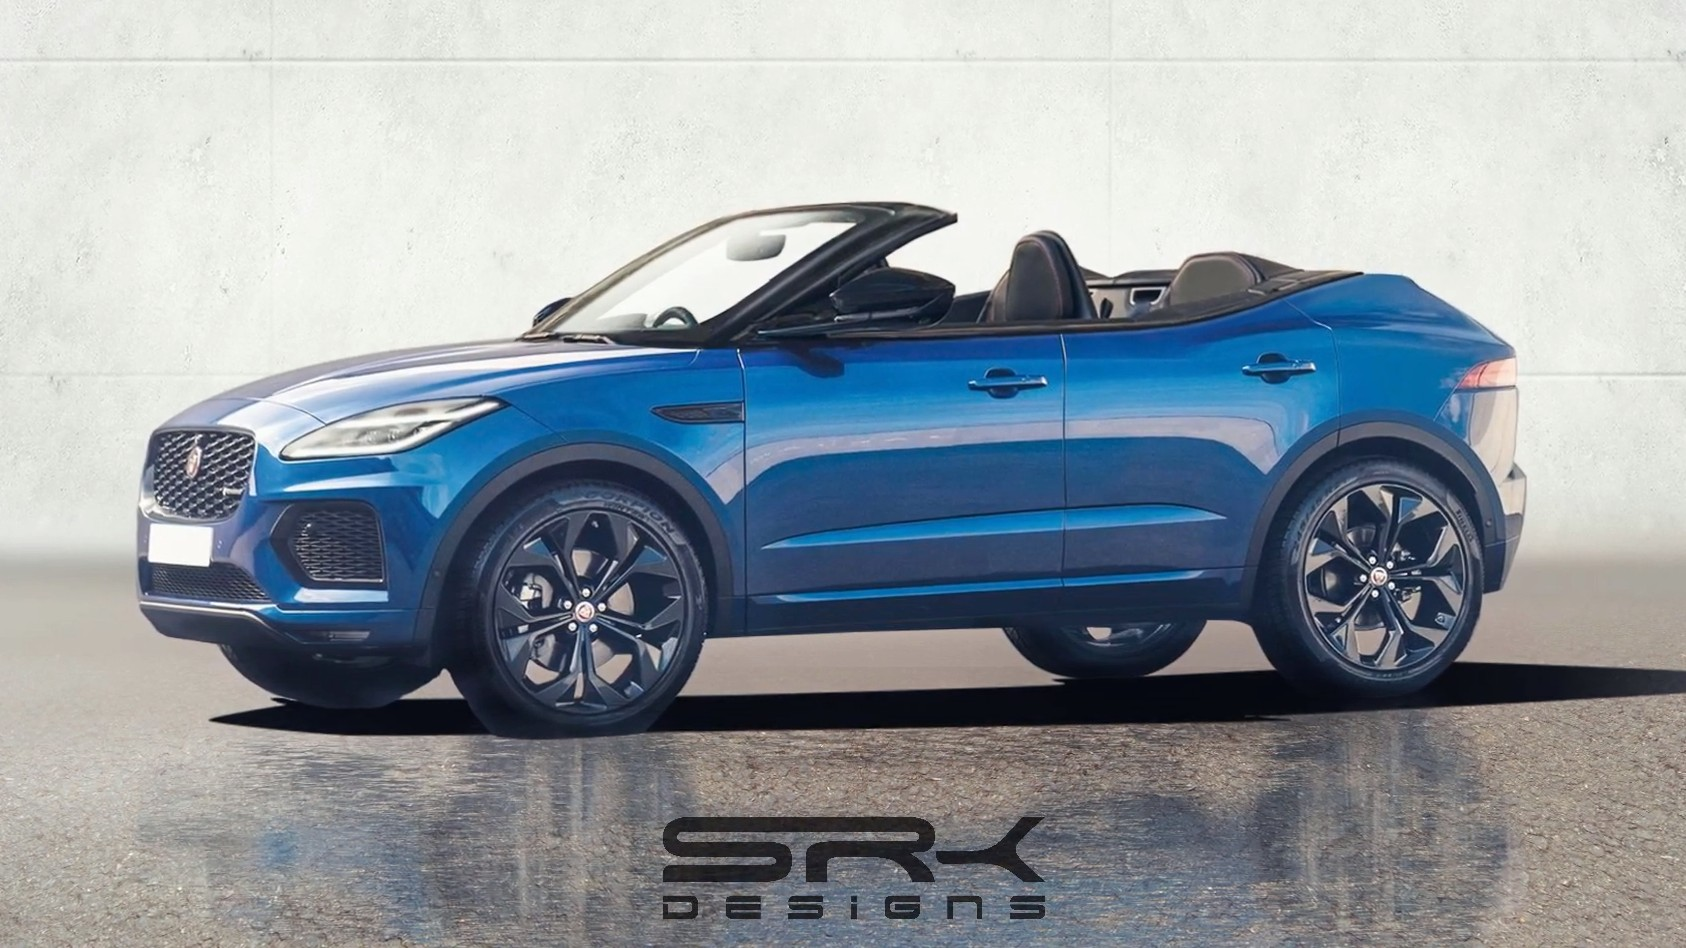 Jaguar E-Pace Convertible